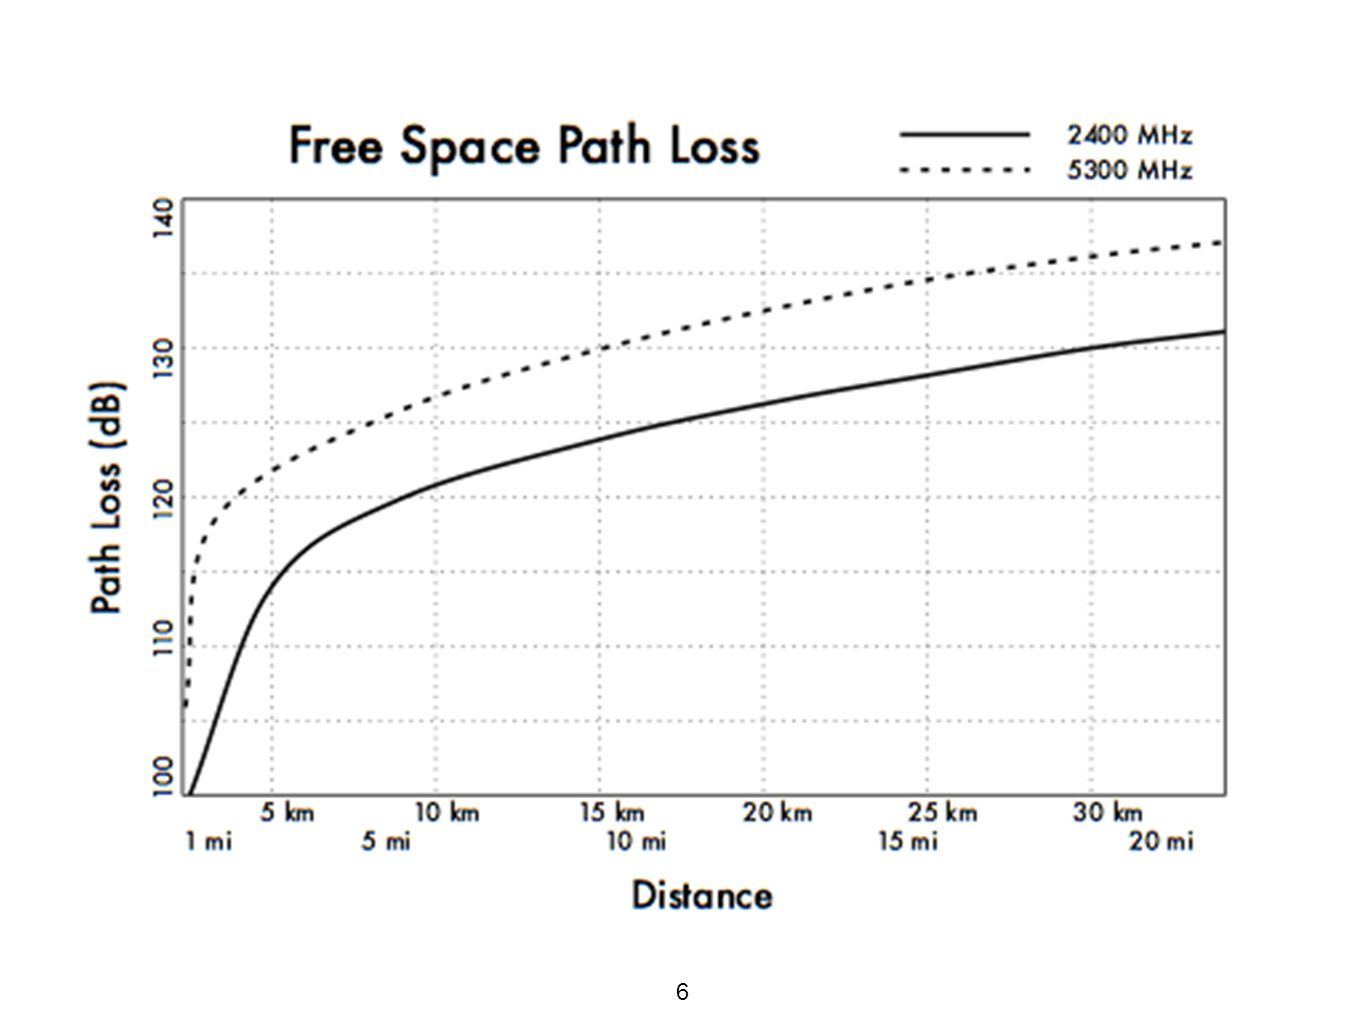 free space path loss distance relationship